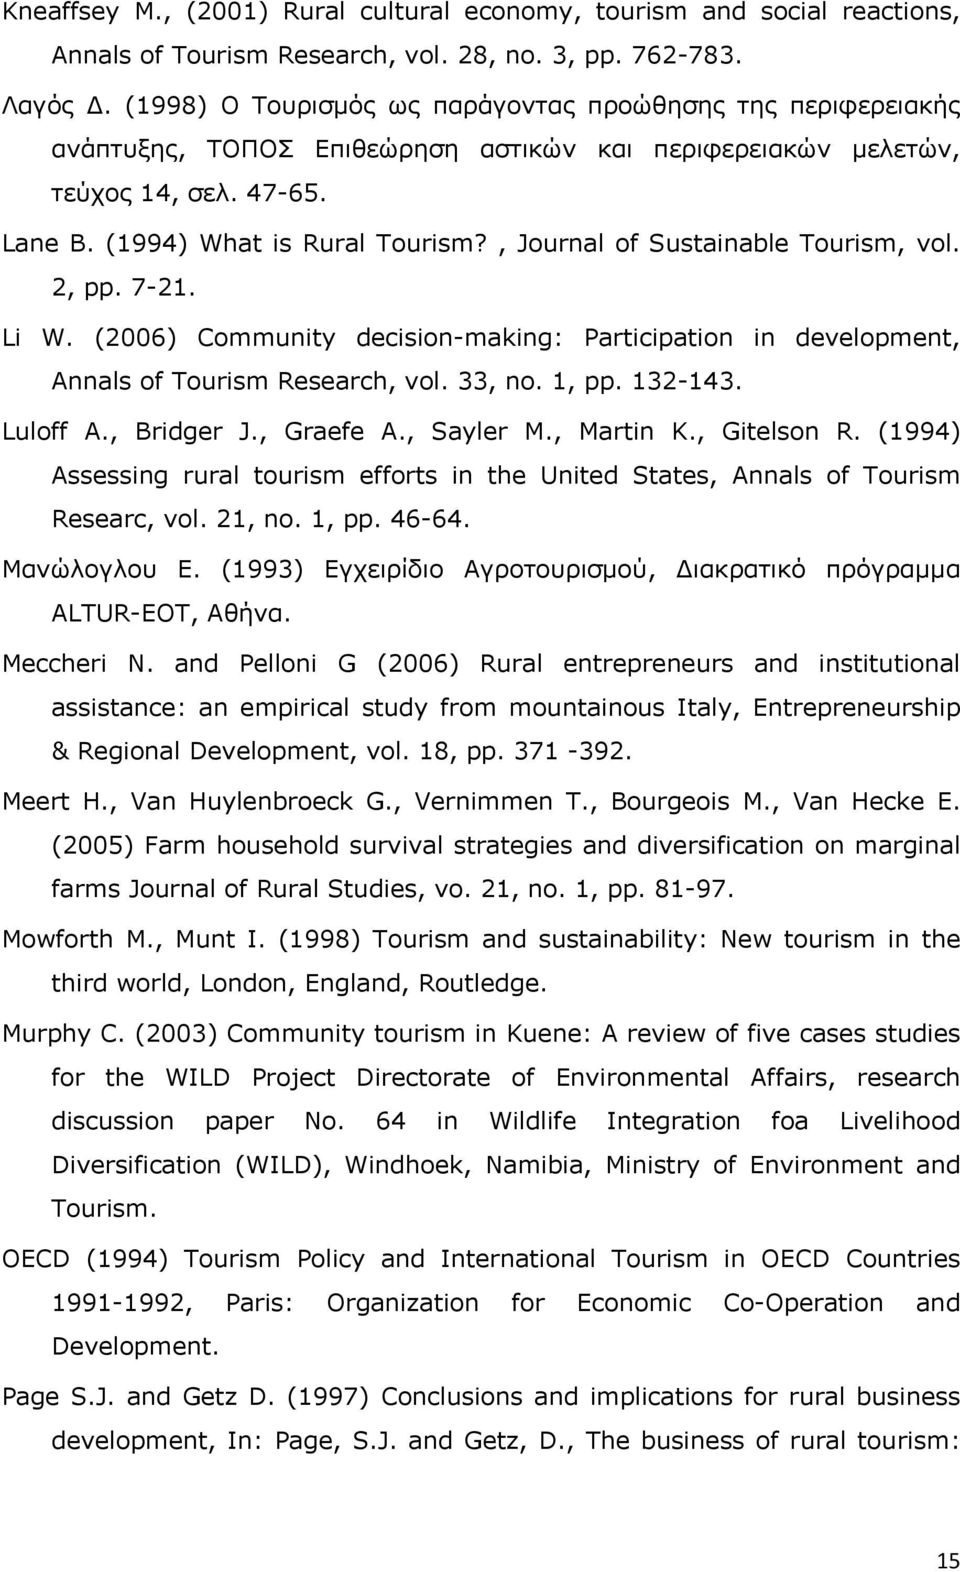 , Journal of Sustainable Tourism, vol. 2, pp. 7-21. Li W. (2006) Community decision-making: Participation in development, Annals of Tourism Research, vol. 33, no. 1, pp. 132-143. Luloff A., Bridger J.